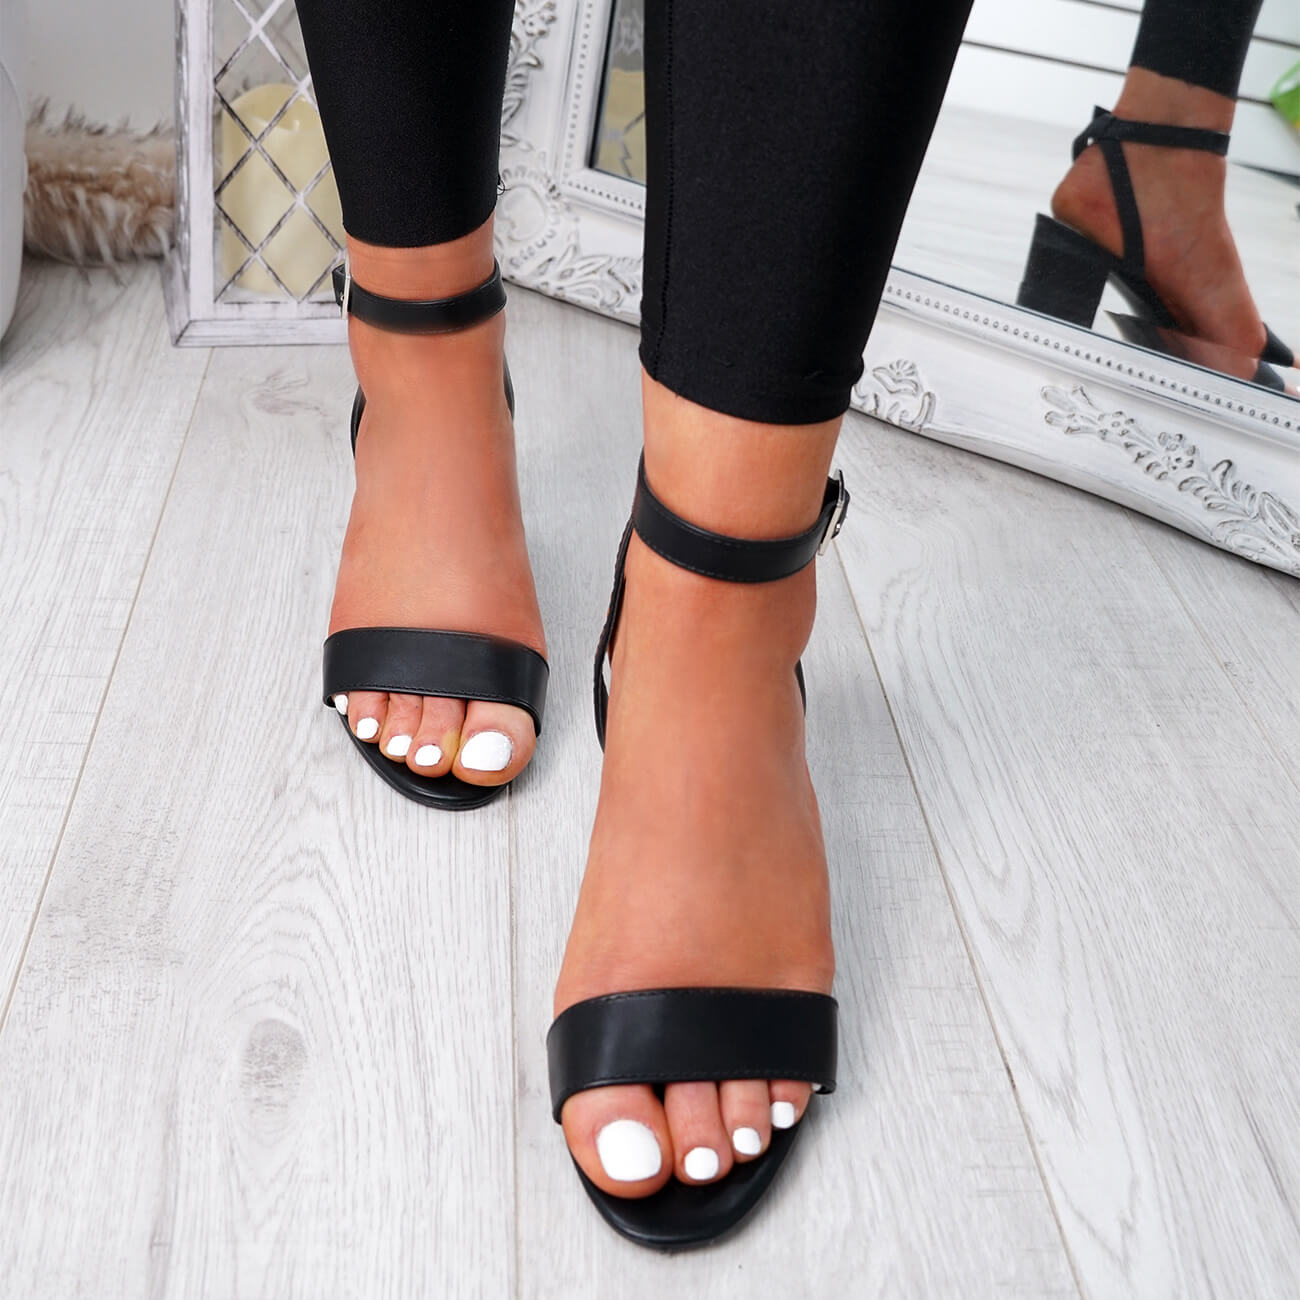 WOMENS-LADIES-PEEP-TOE-HIGH-BLOCK-HEEL-SANDALS-ANKLE-STRAP-PARTY-SHOES-SIZE thumbnail 7